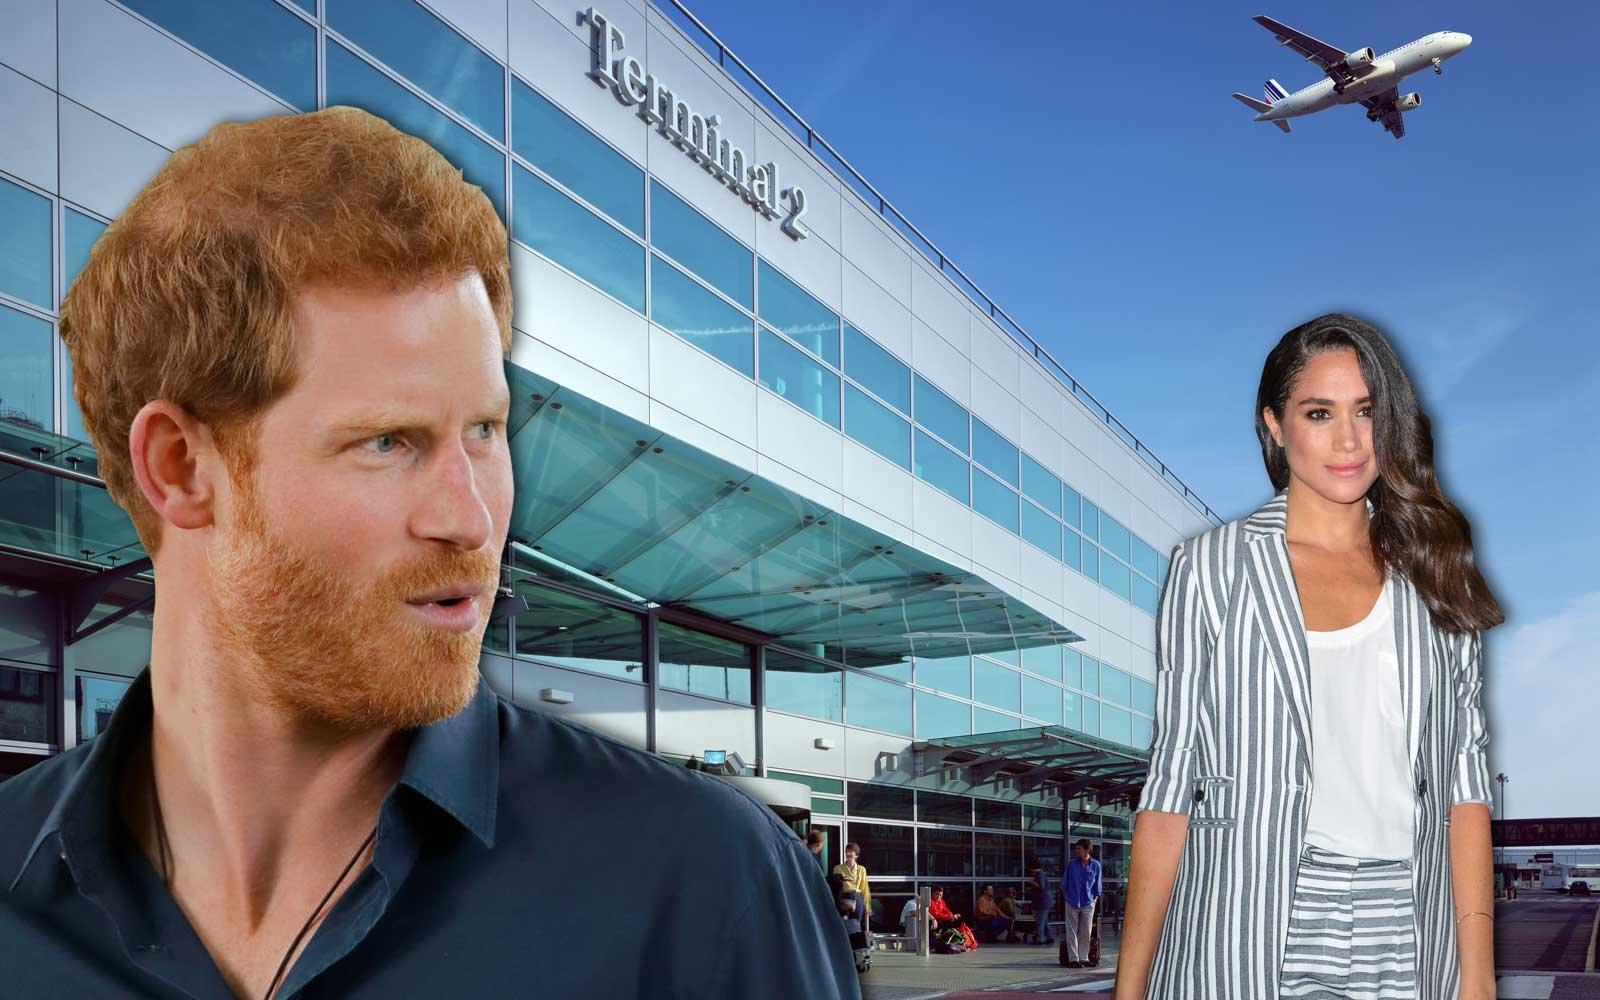 Illustration of Prince Harry and Meghan Markle at Heathrow Airport London